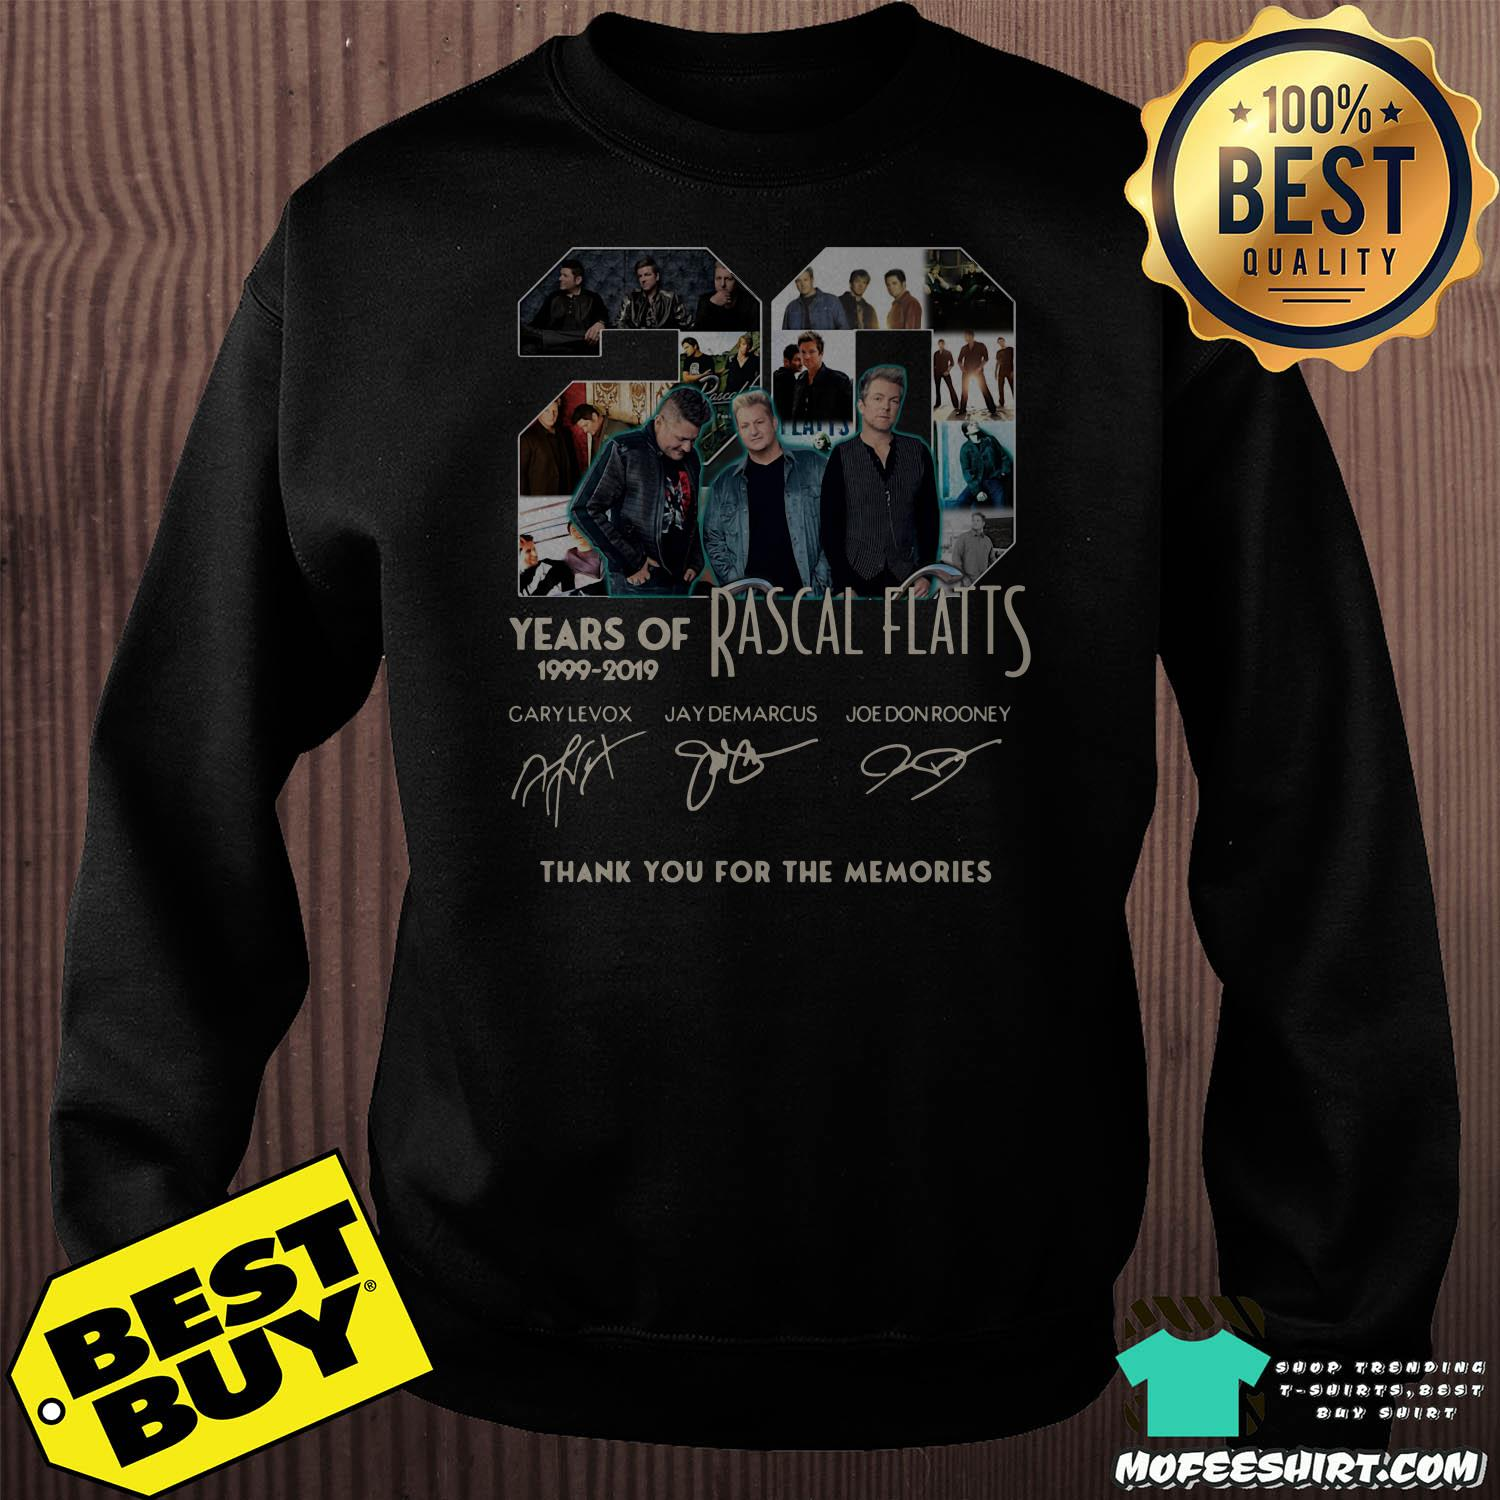 20 years of rascal flatts 1999 2019 thank you for the memories signature sweatshirt - 20 Years of Rascal Flatts 1999-2019 thank you for the memories signature shirt